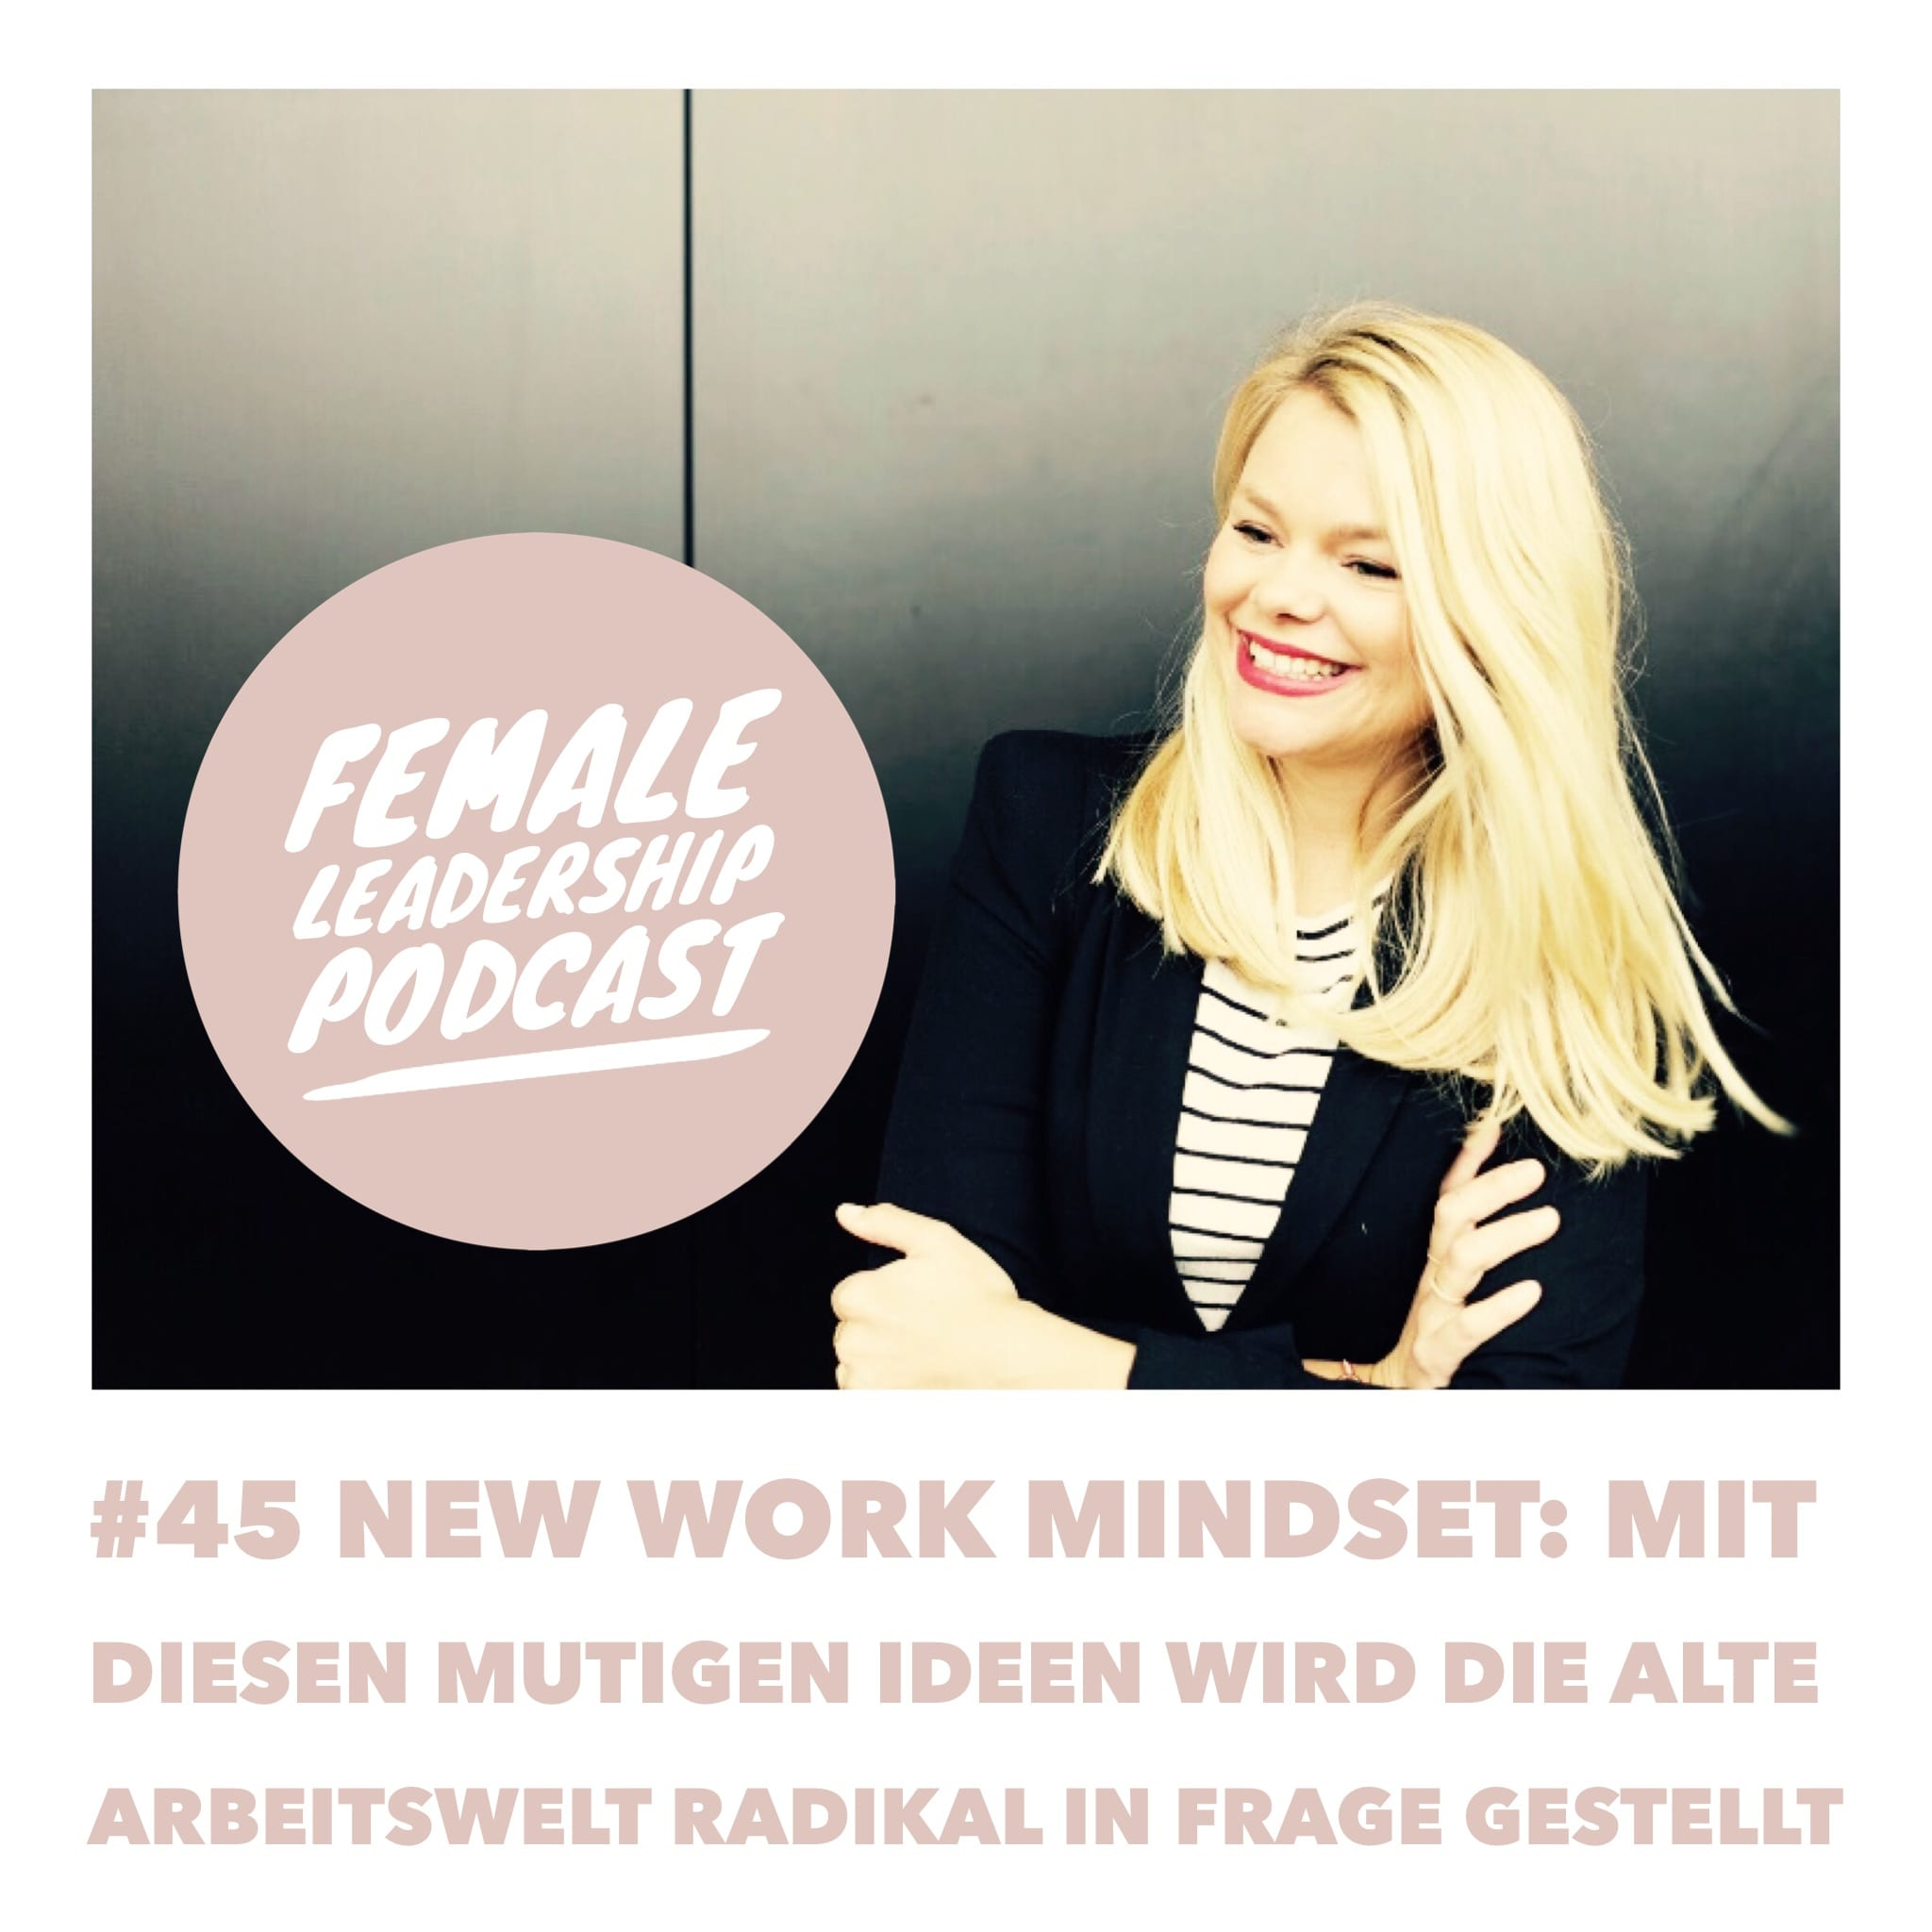 #45-New-Work-Mindset-Female Leadership Podcast Vera Strauch.jpg